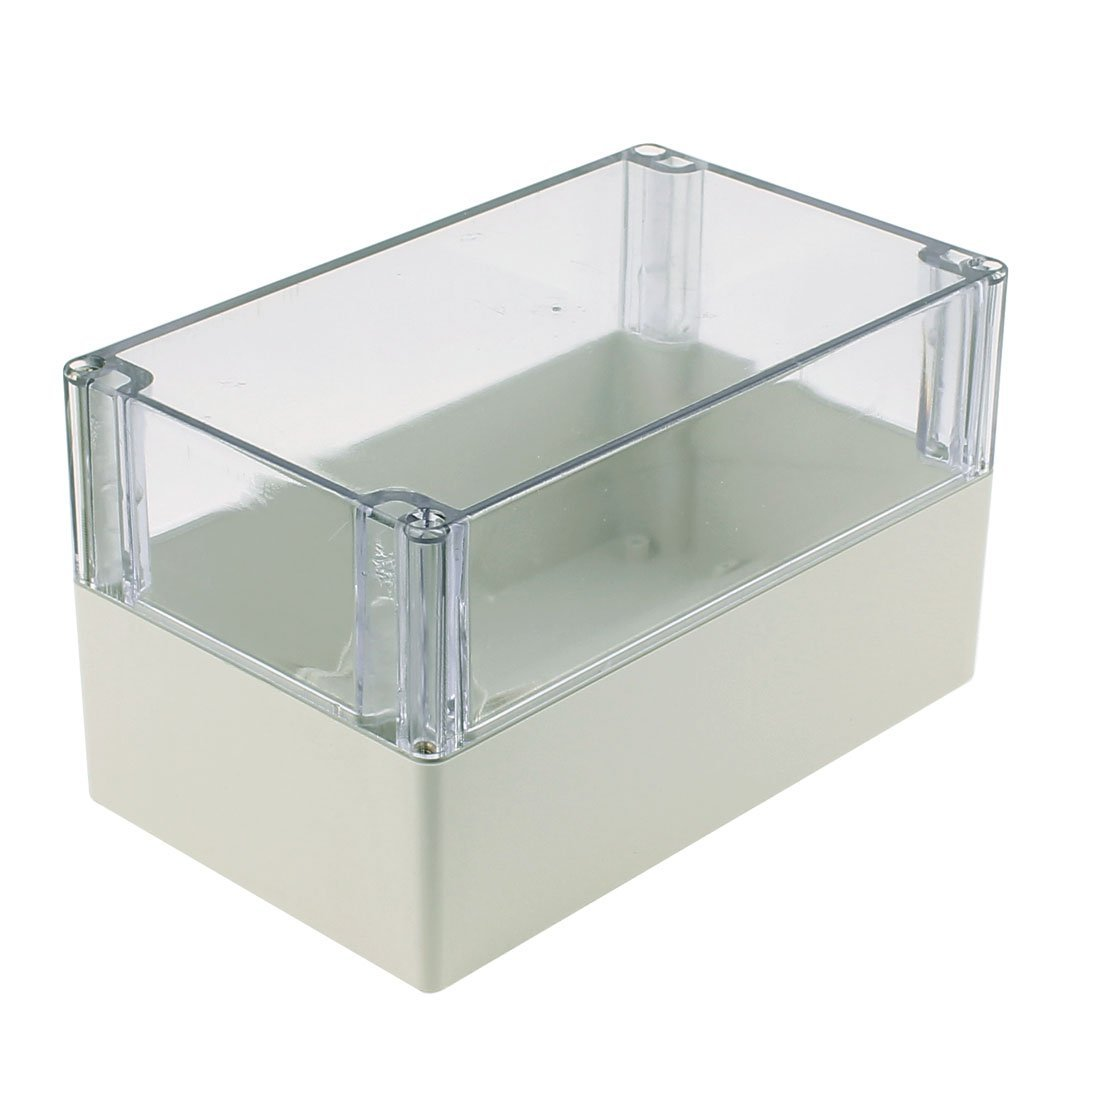 Amazon.com: eDealMax 200 x 120 x 113 mm cubierta transparente caja sellada a prueba de agua Junction Box Enclosure: Electronics